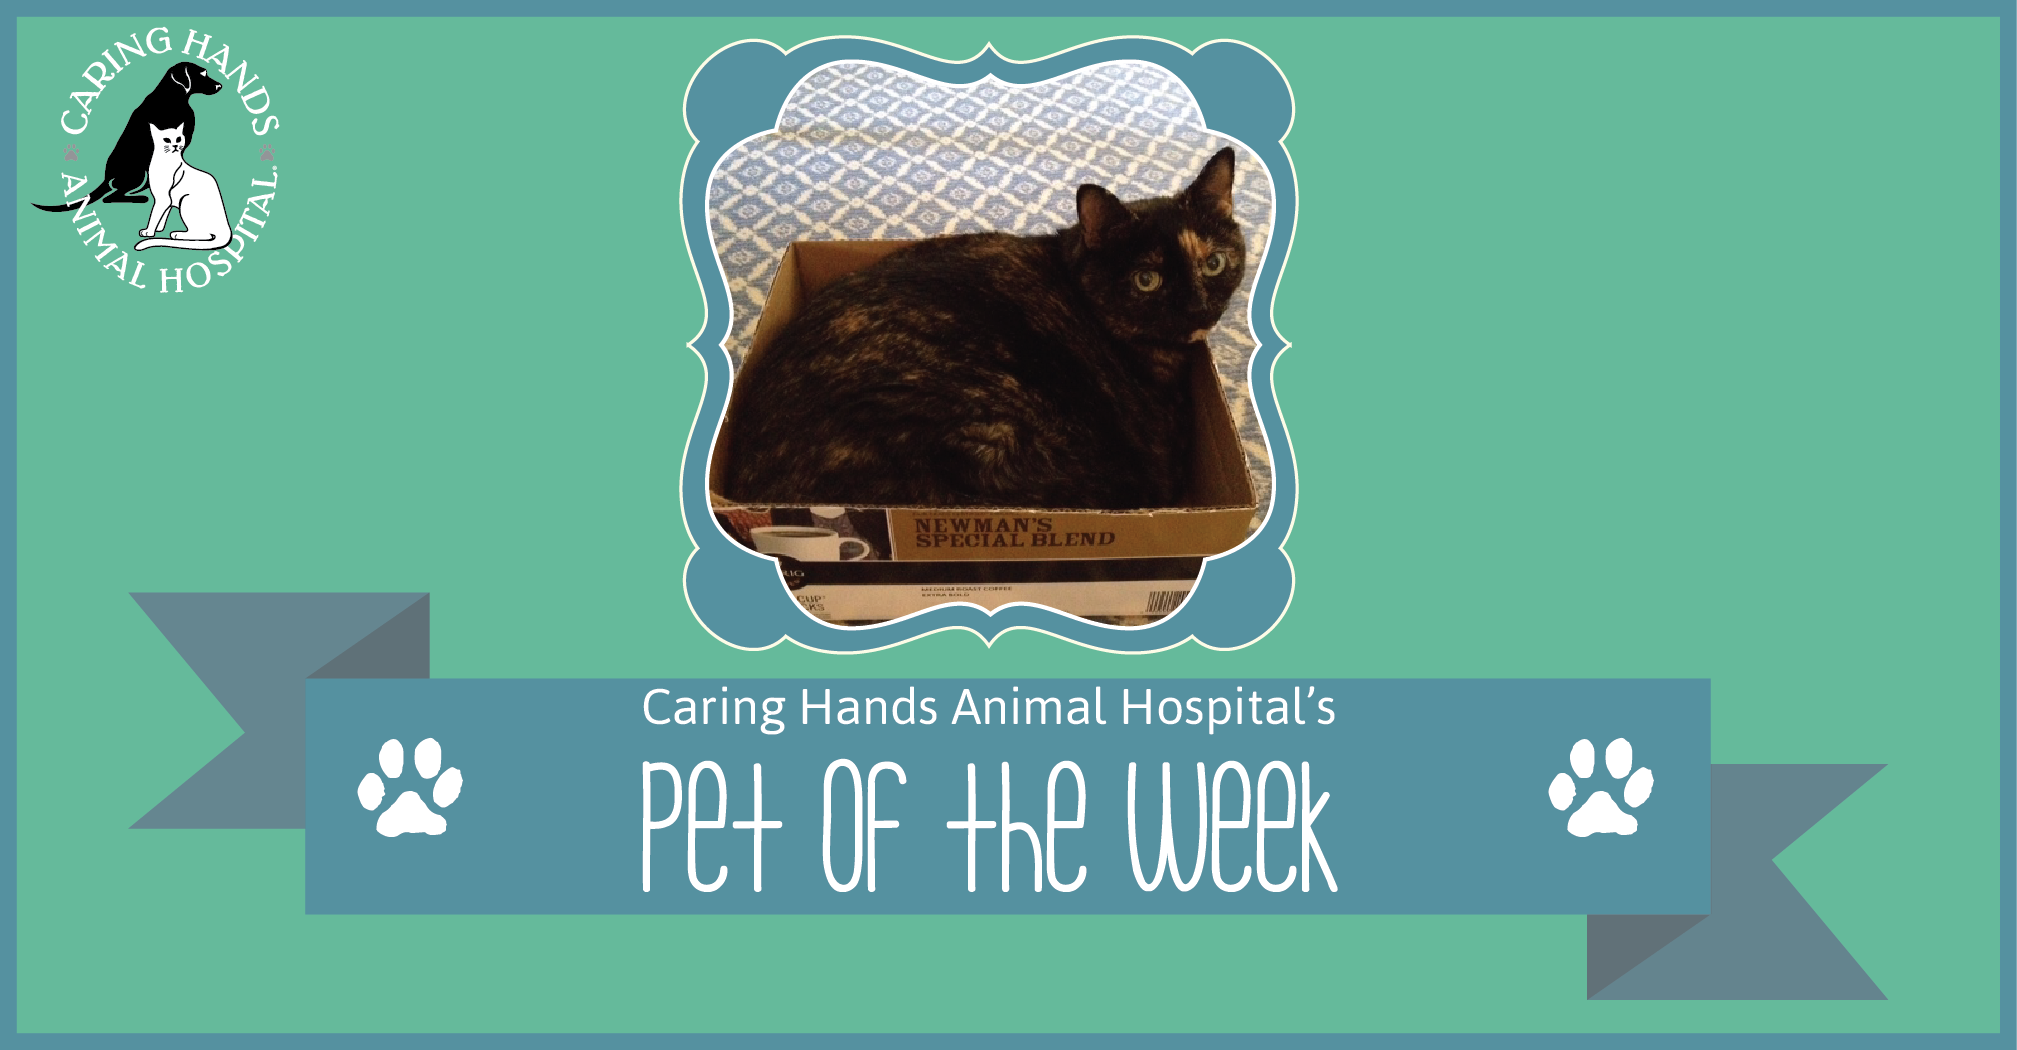 caring society week 1 kitten fostering handbook the austin humane society relies on a pool of dedicated and compassionate foster volunteers to care for kittens who are too.